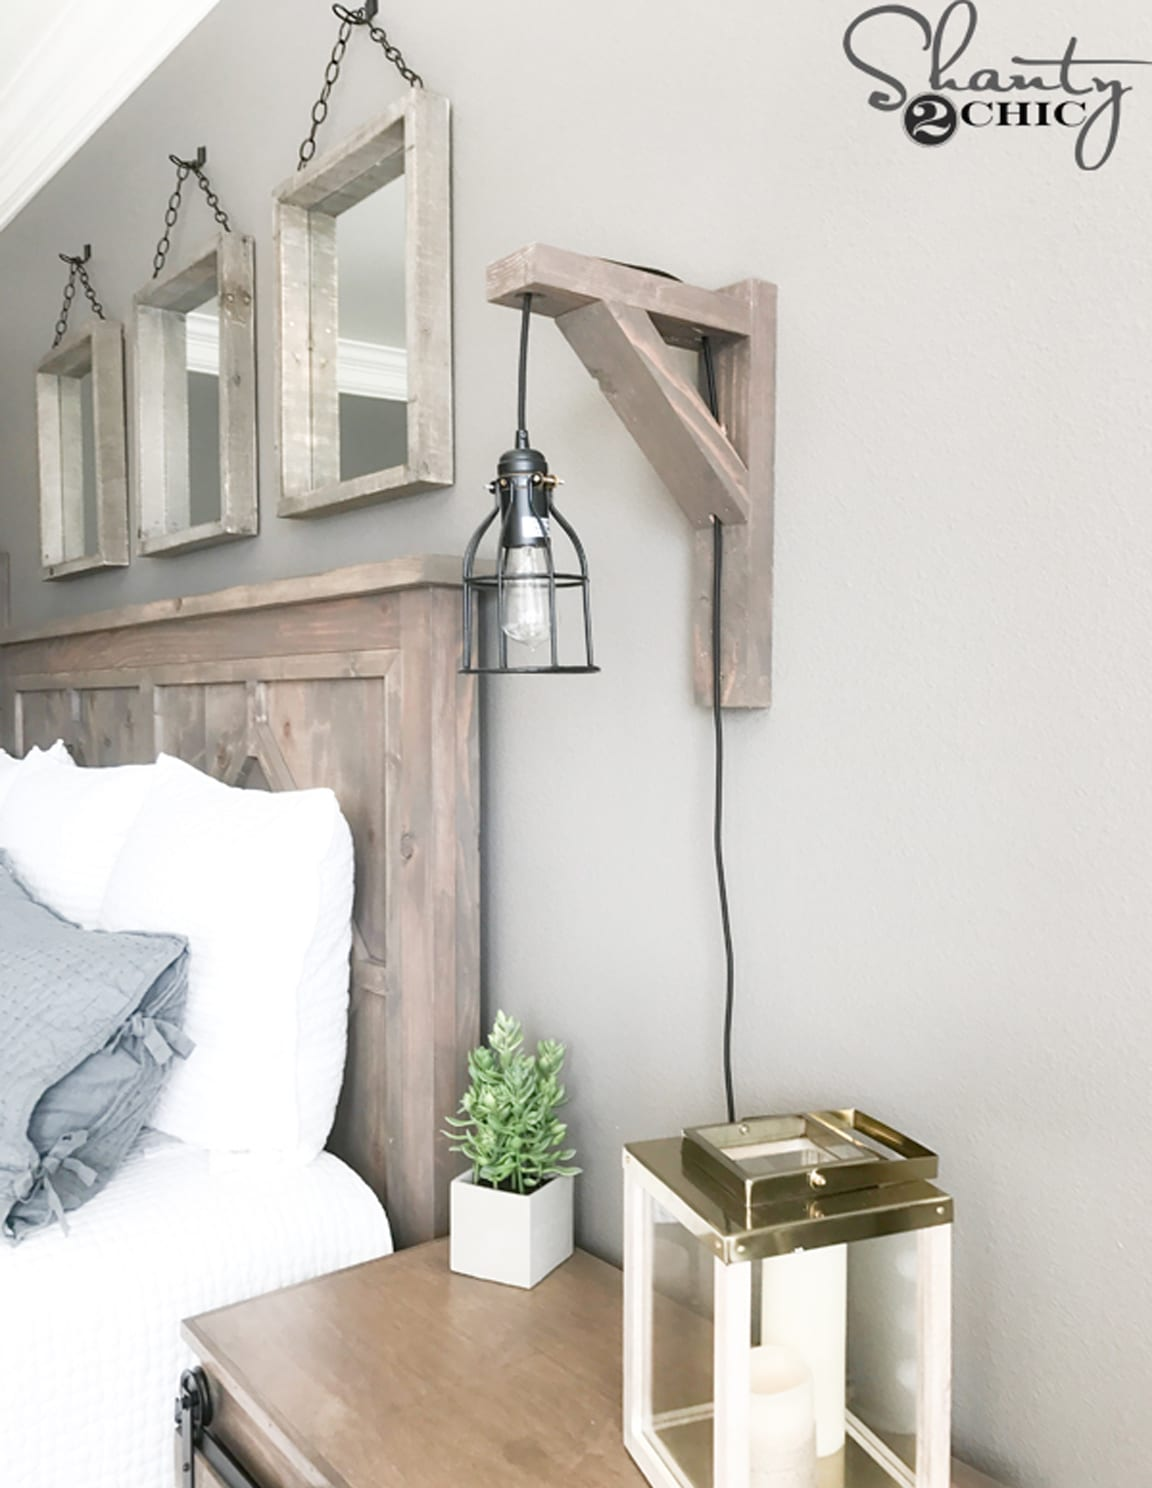 Diy corbel sconce light